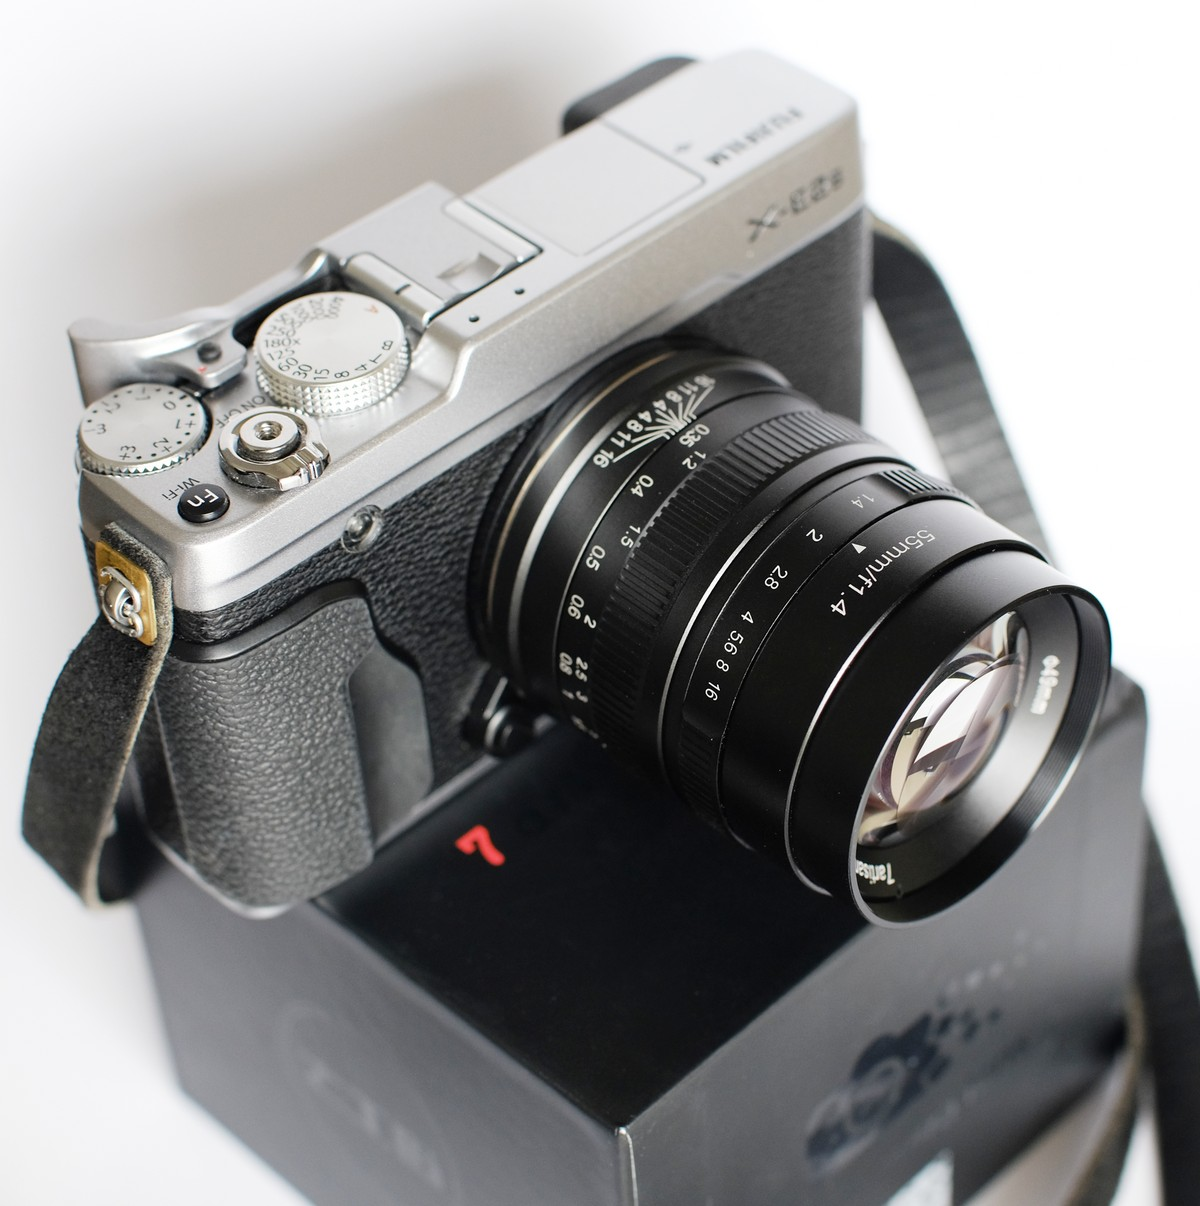 7artisans 55mm F14 On A Fuji X Camera By Iurii Zvonar 35mmc Fujifilm T2 Body Only Xf 56mm F12 Shot Samples With E2s